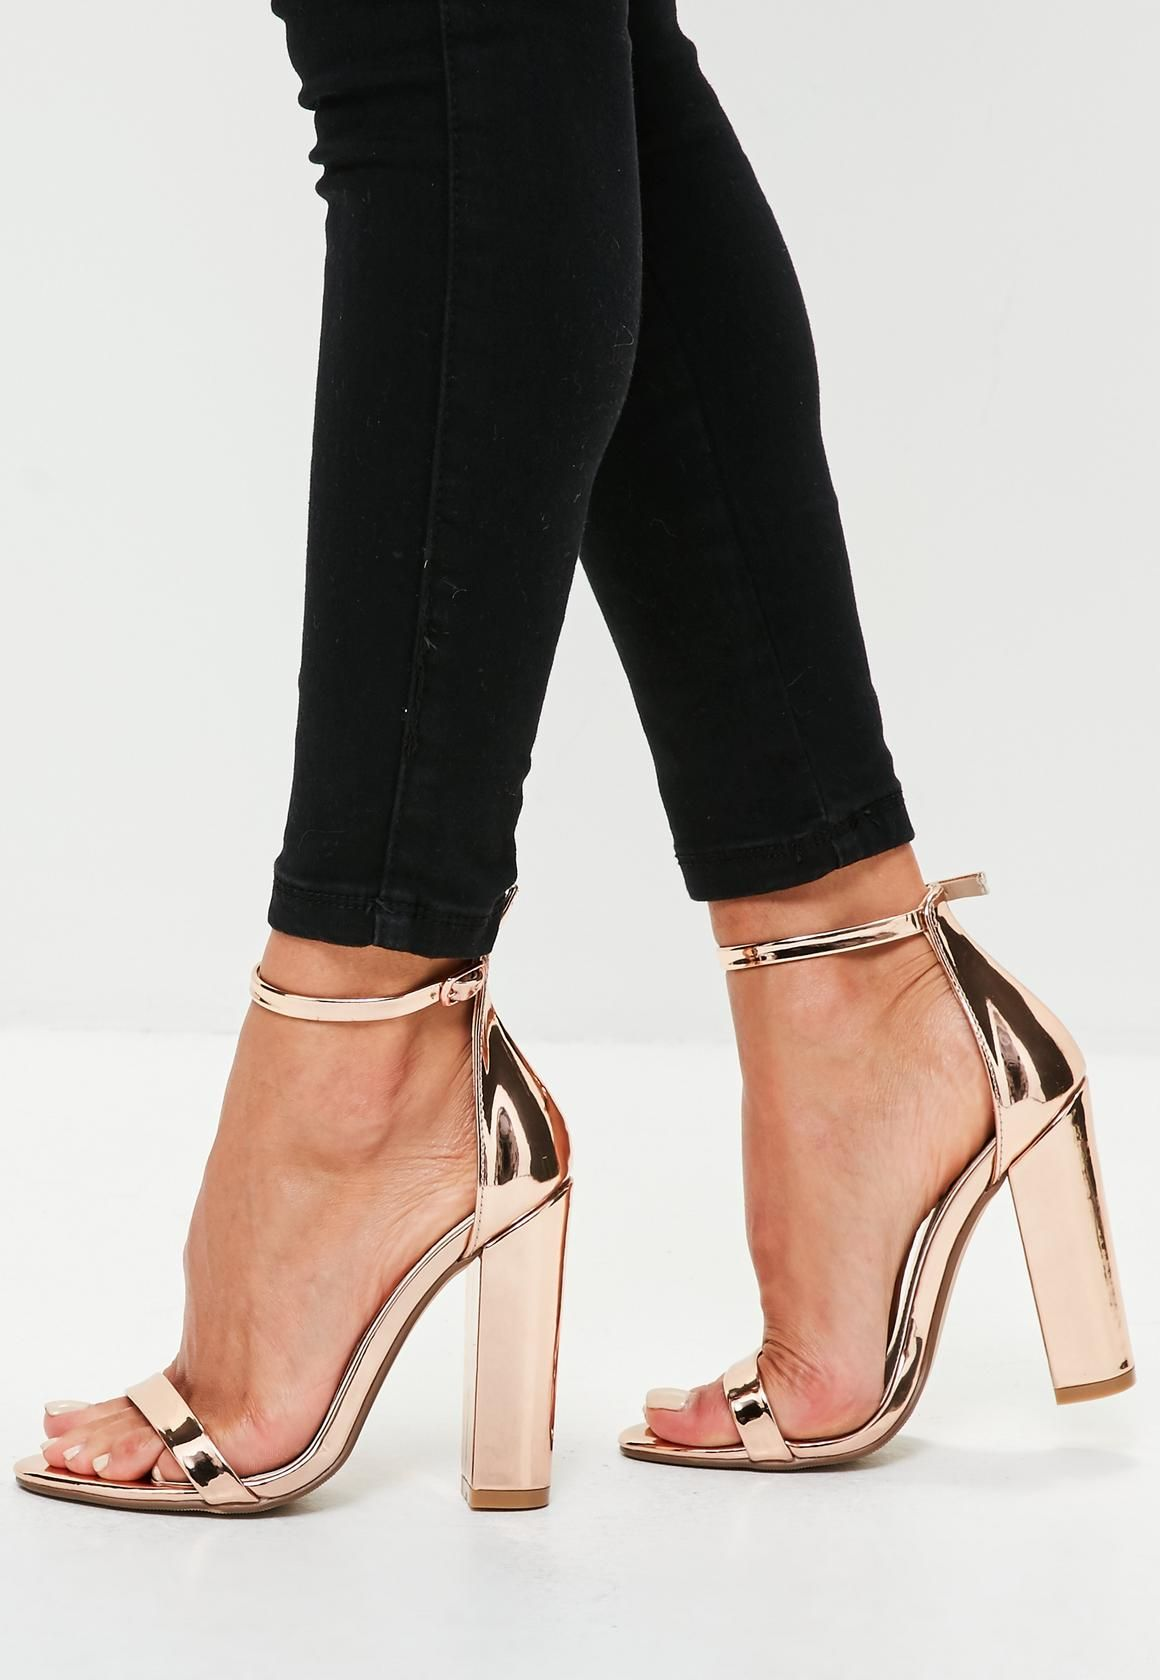 83577c73f04 Missguided - Rose Gold Barely There Block Heels